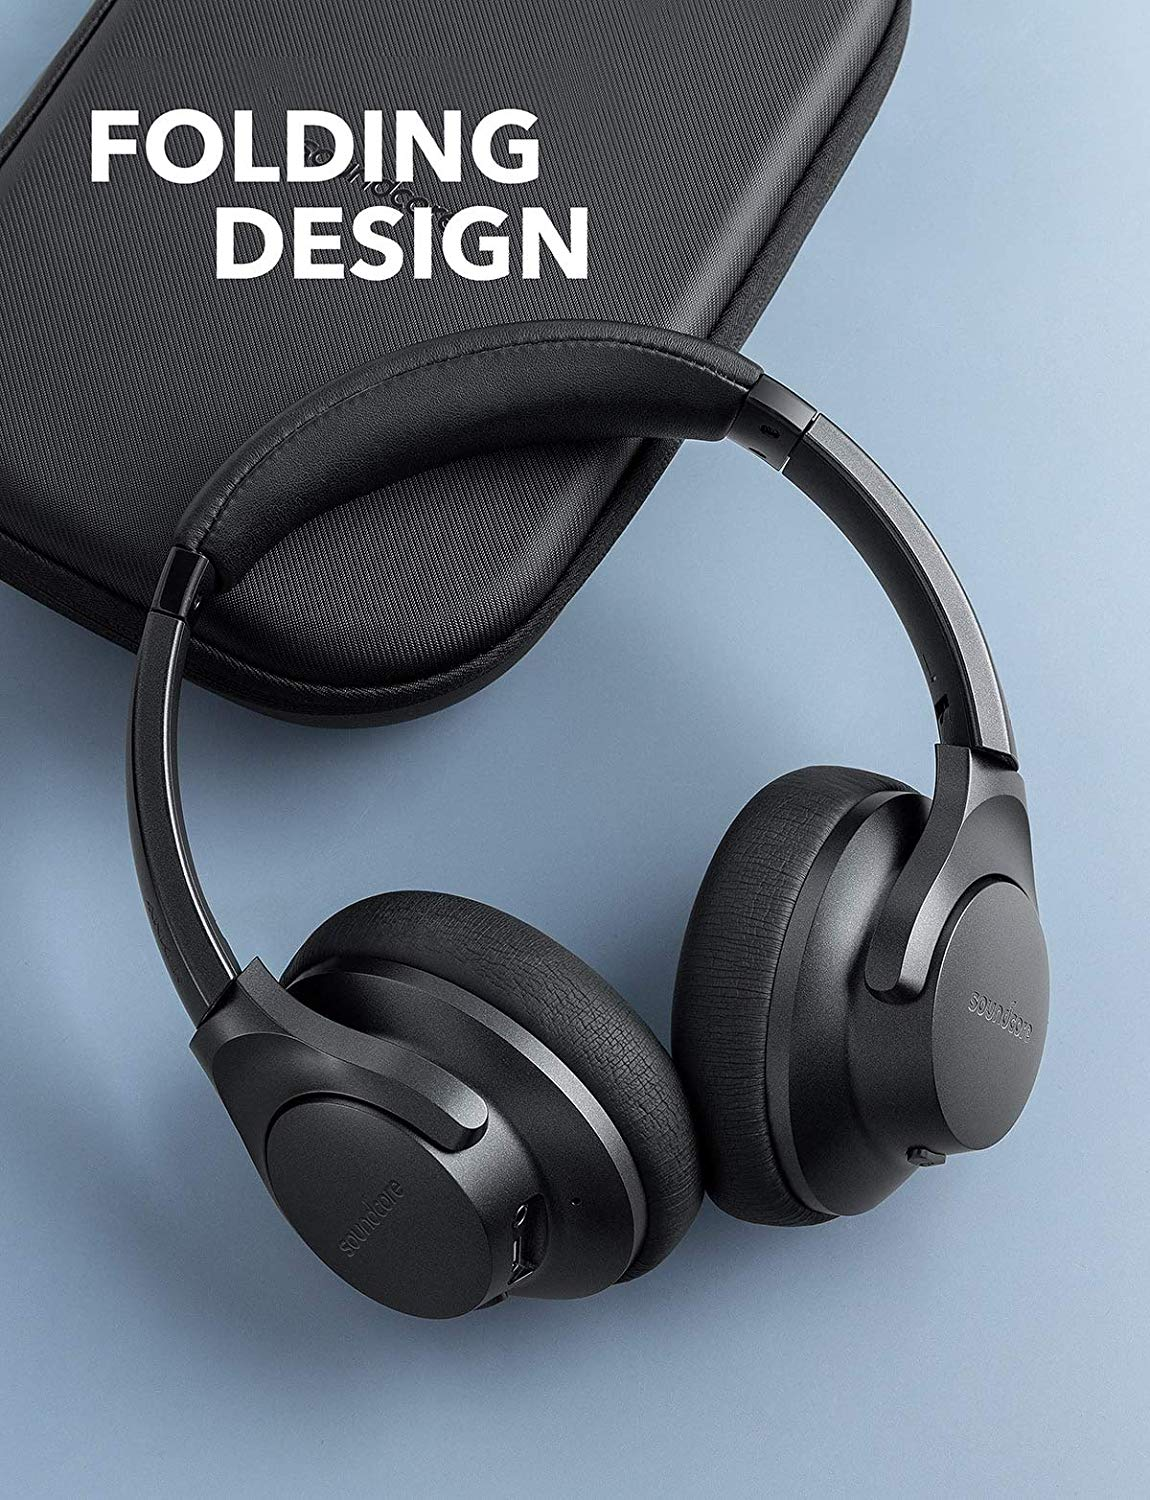 Soundcore Life 2 Active Noise Cancelling Over-Ear Wireless Headphones